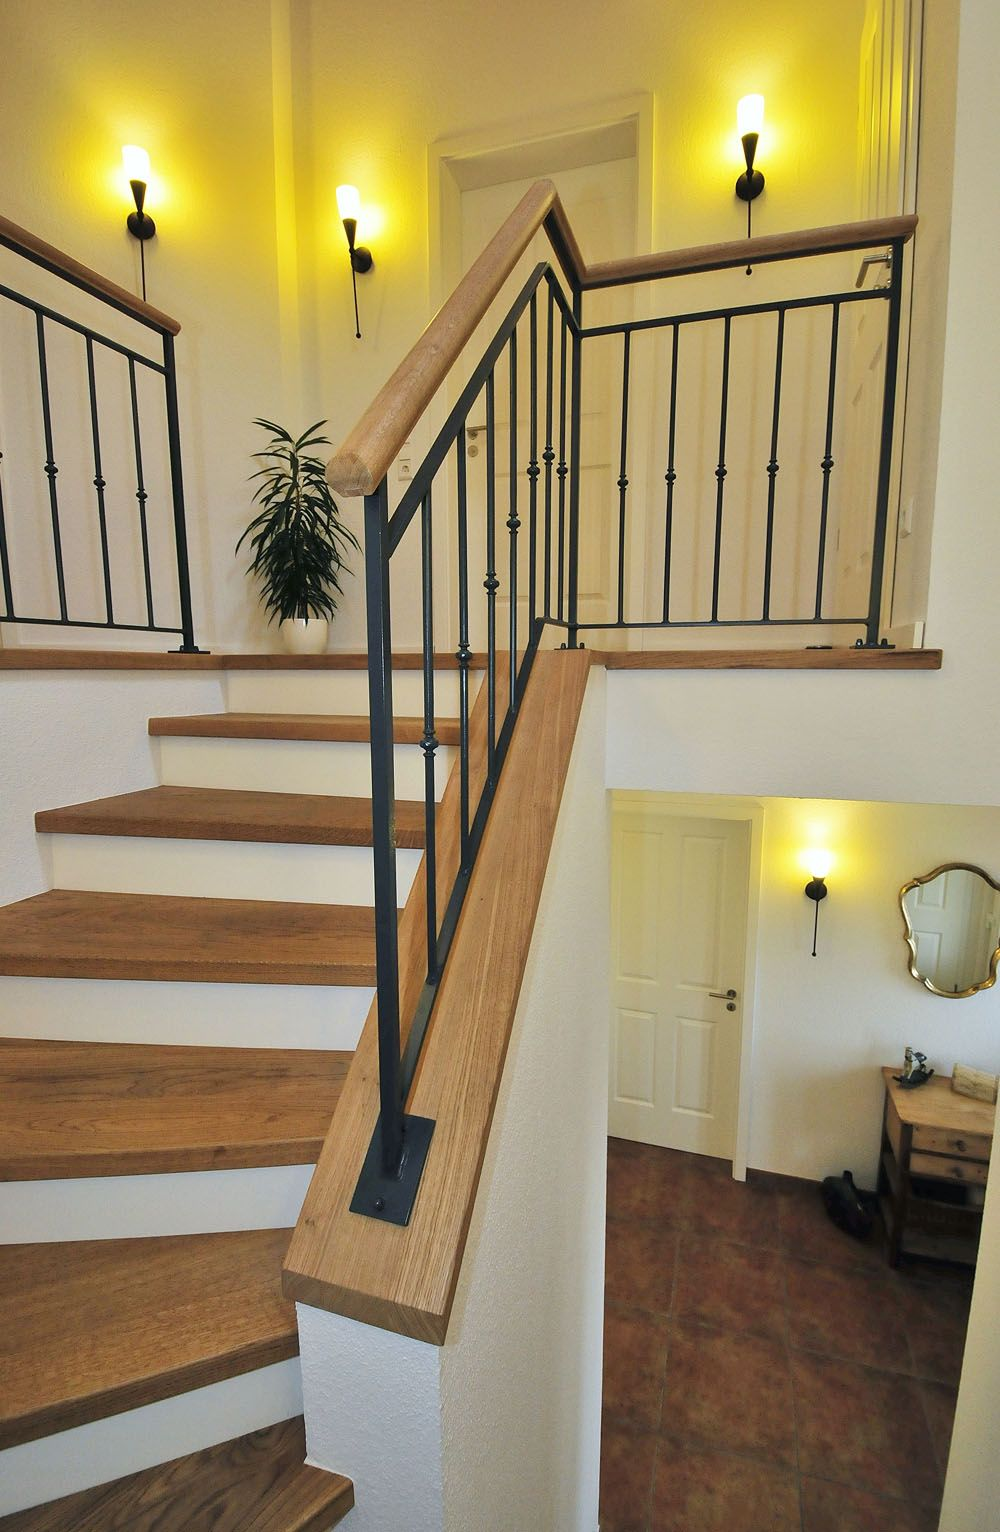 betontreppe mit holz 15 5 wohnideen pinterest betontreppe holz und treppe. Black Bedroom Furniture Sets. Home Design Ideas